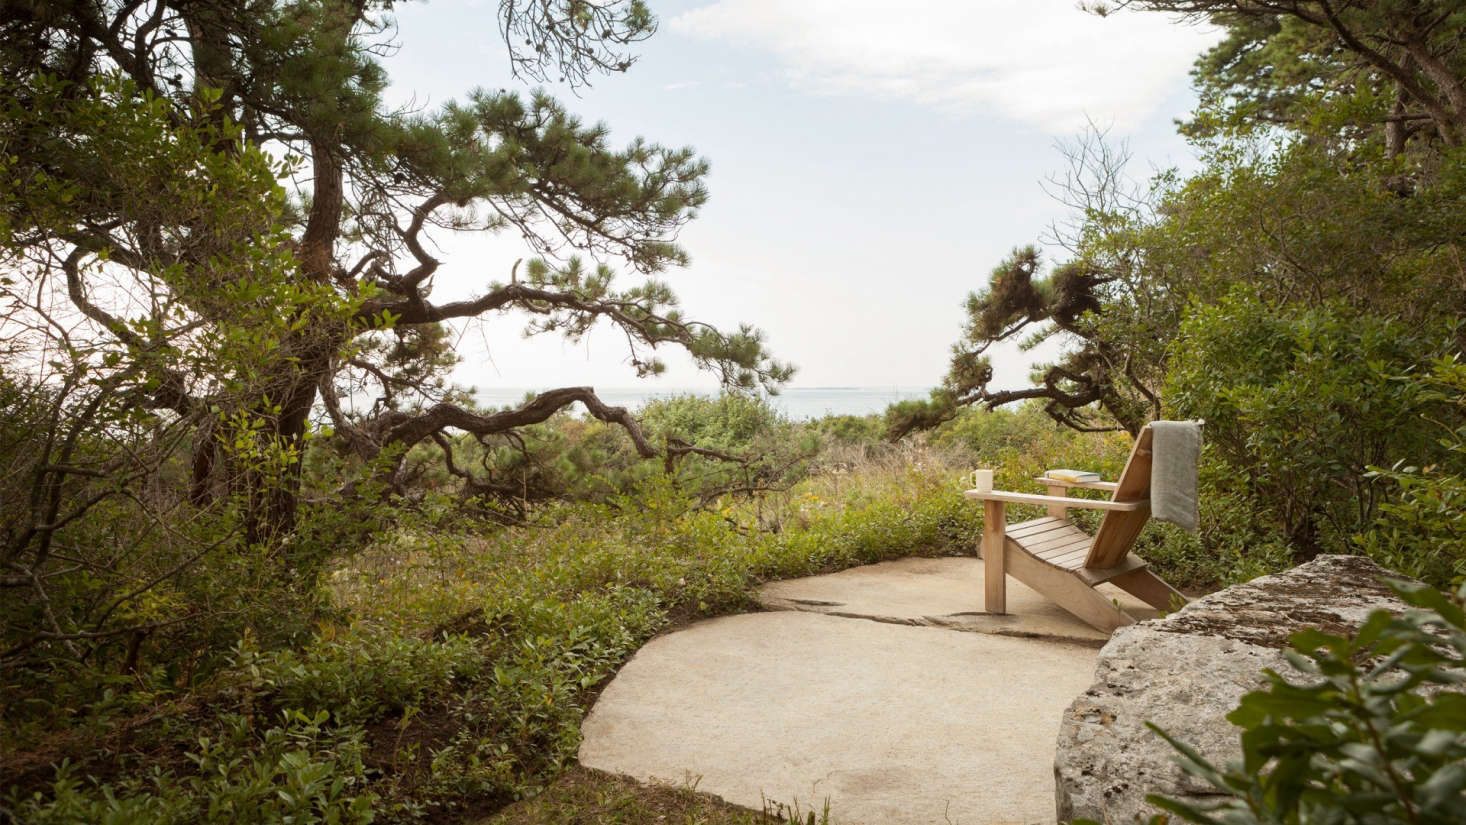 A private seating area on stone slabs is set among an existing grove of pitch pines.